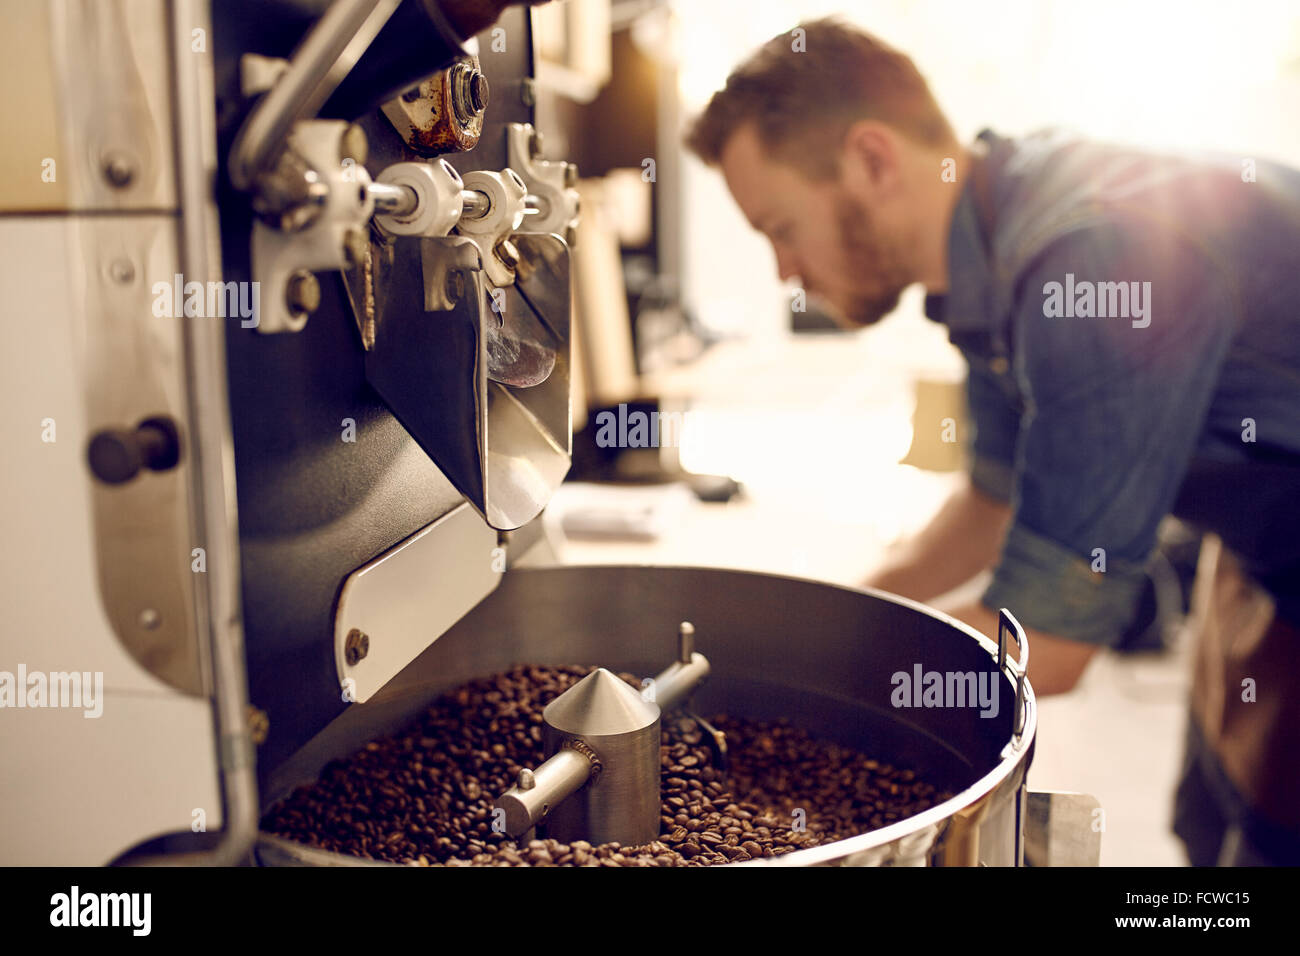 Freshly roasted coffee beans in a modern machine - Stock Image